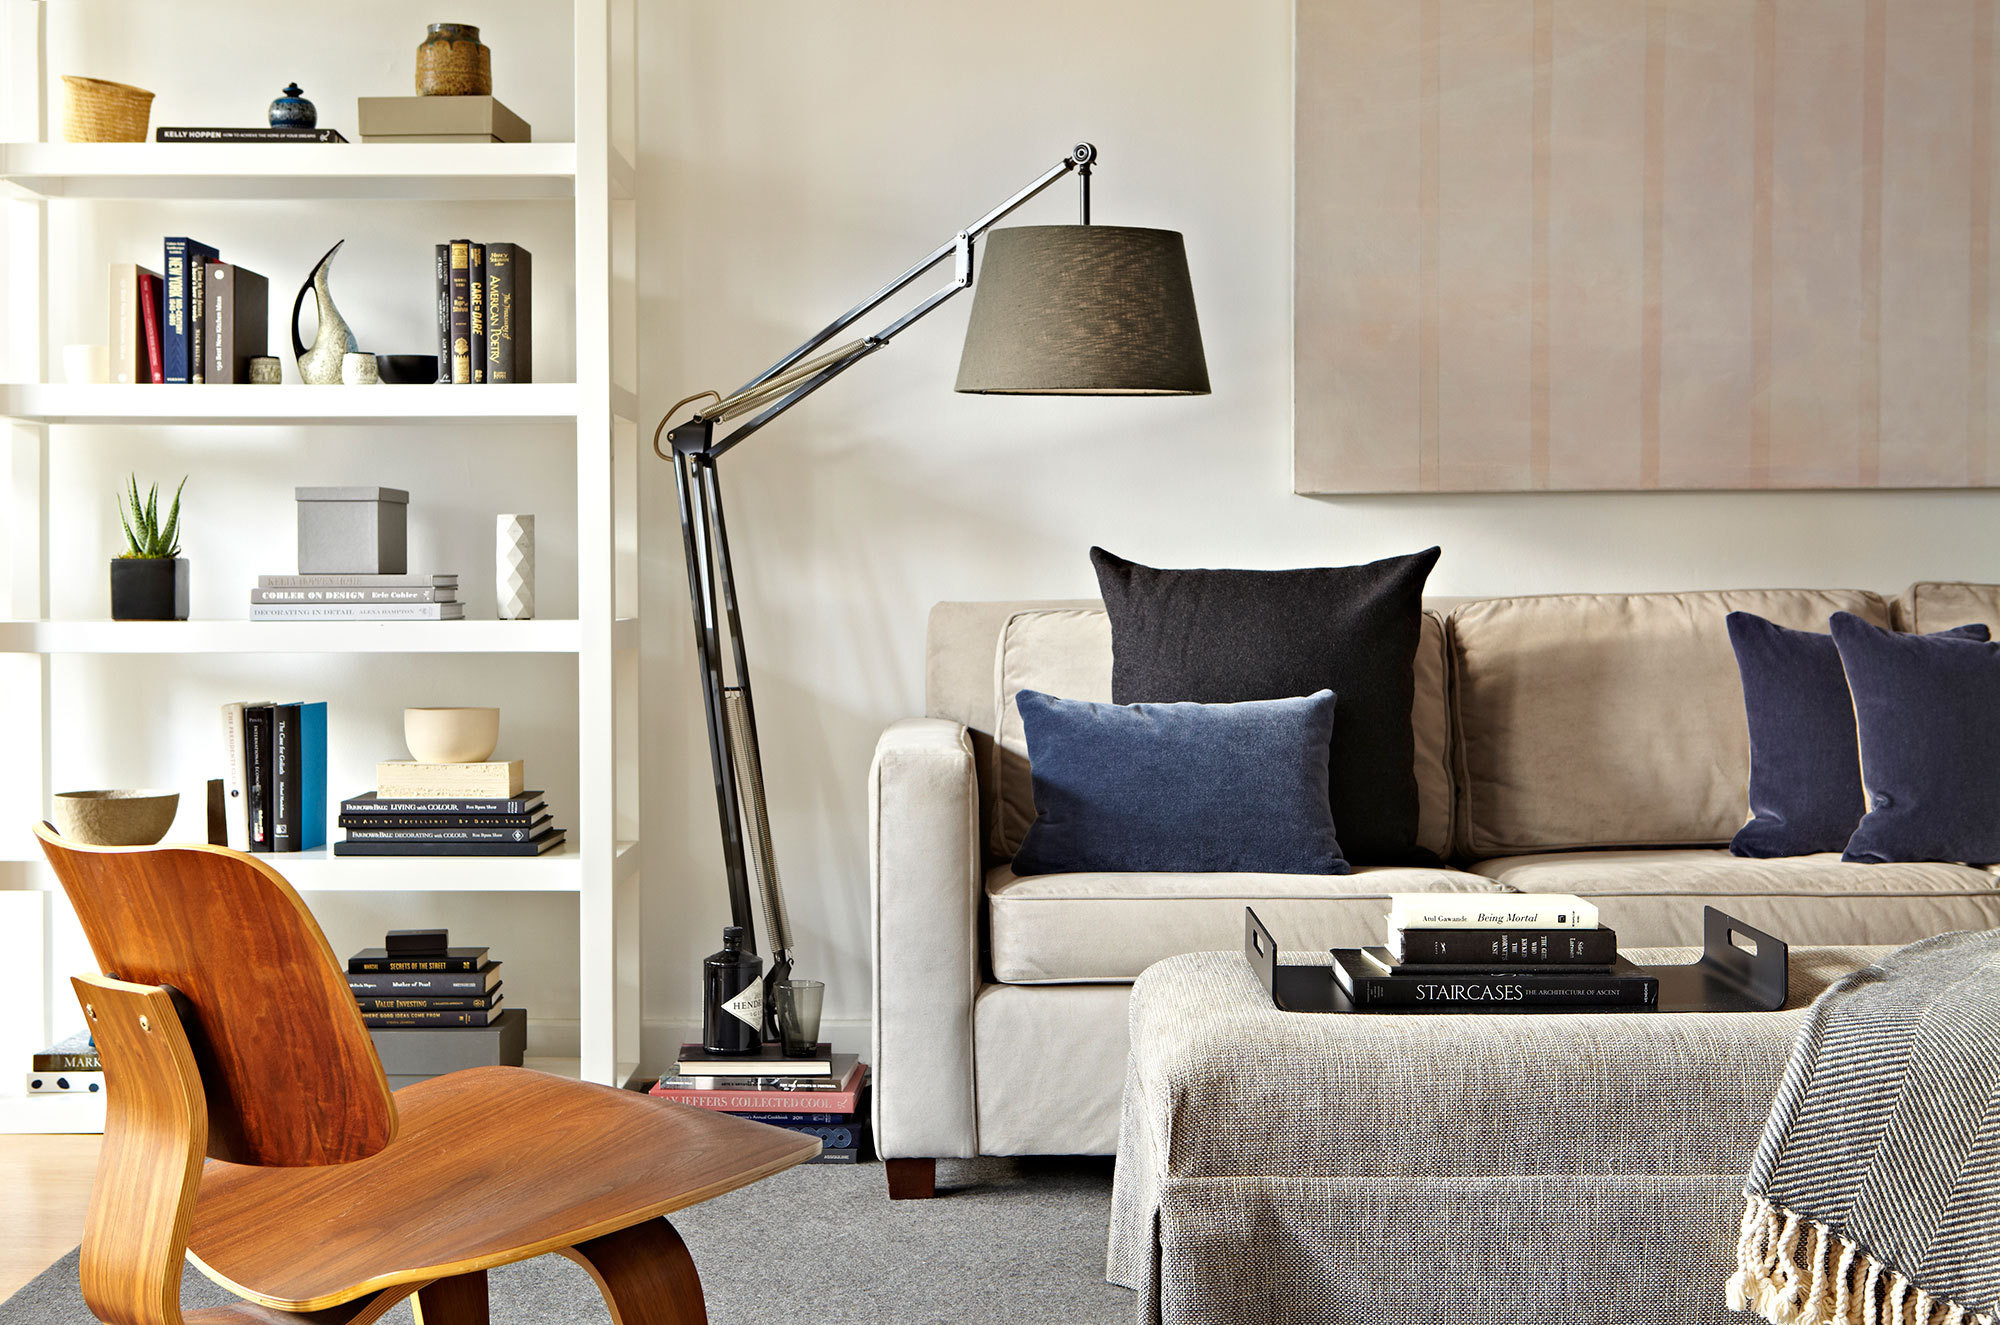 Approachable Furnishings From Retail Stores Such As West Elm Were Paired With Custom Made Items